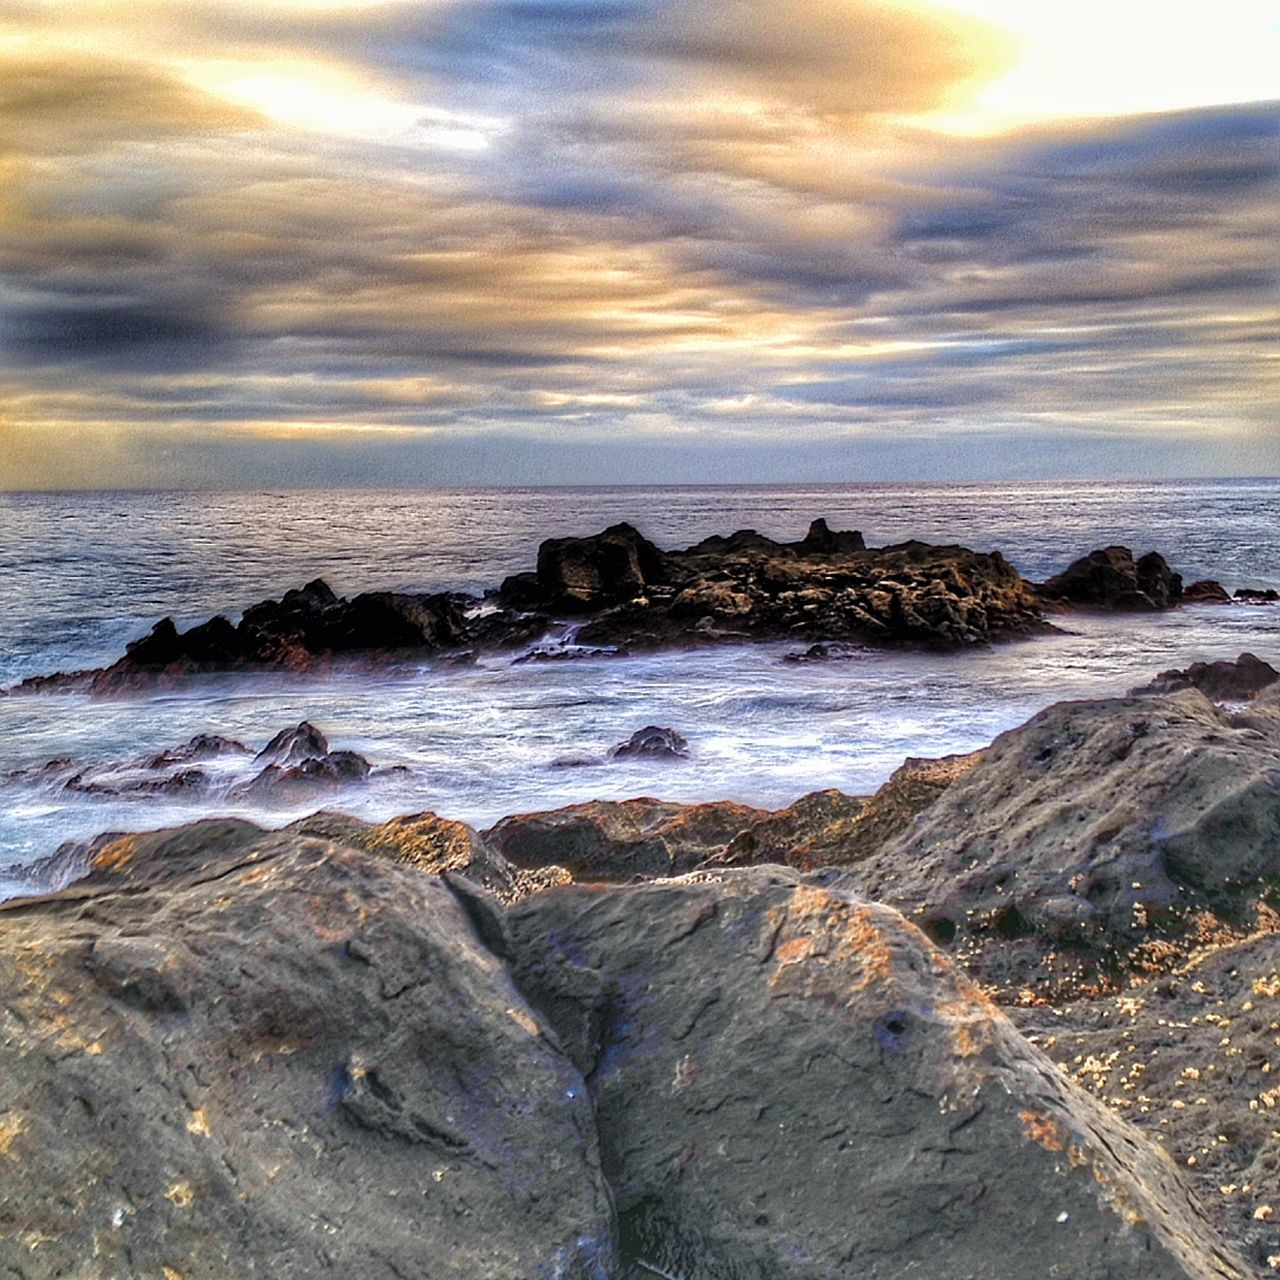 sea, sky, horizon over water, rock - object, nature, cloud - sky, water, beauty in nature, scenics, sunset, rock, wave, no people, beach, outdoors, motion, tranquility, day